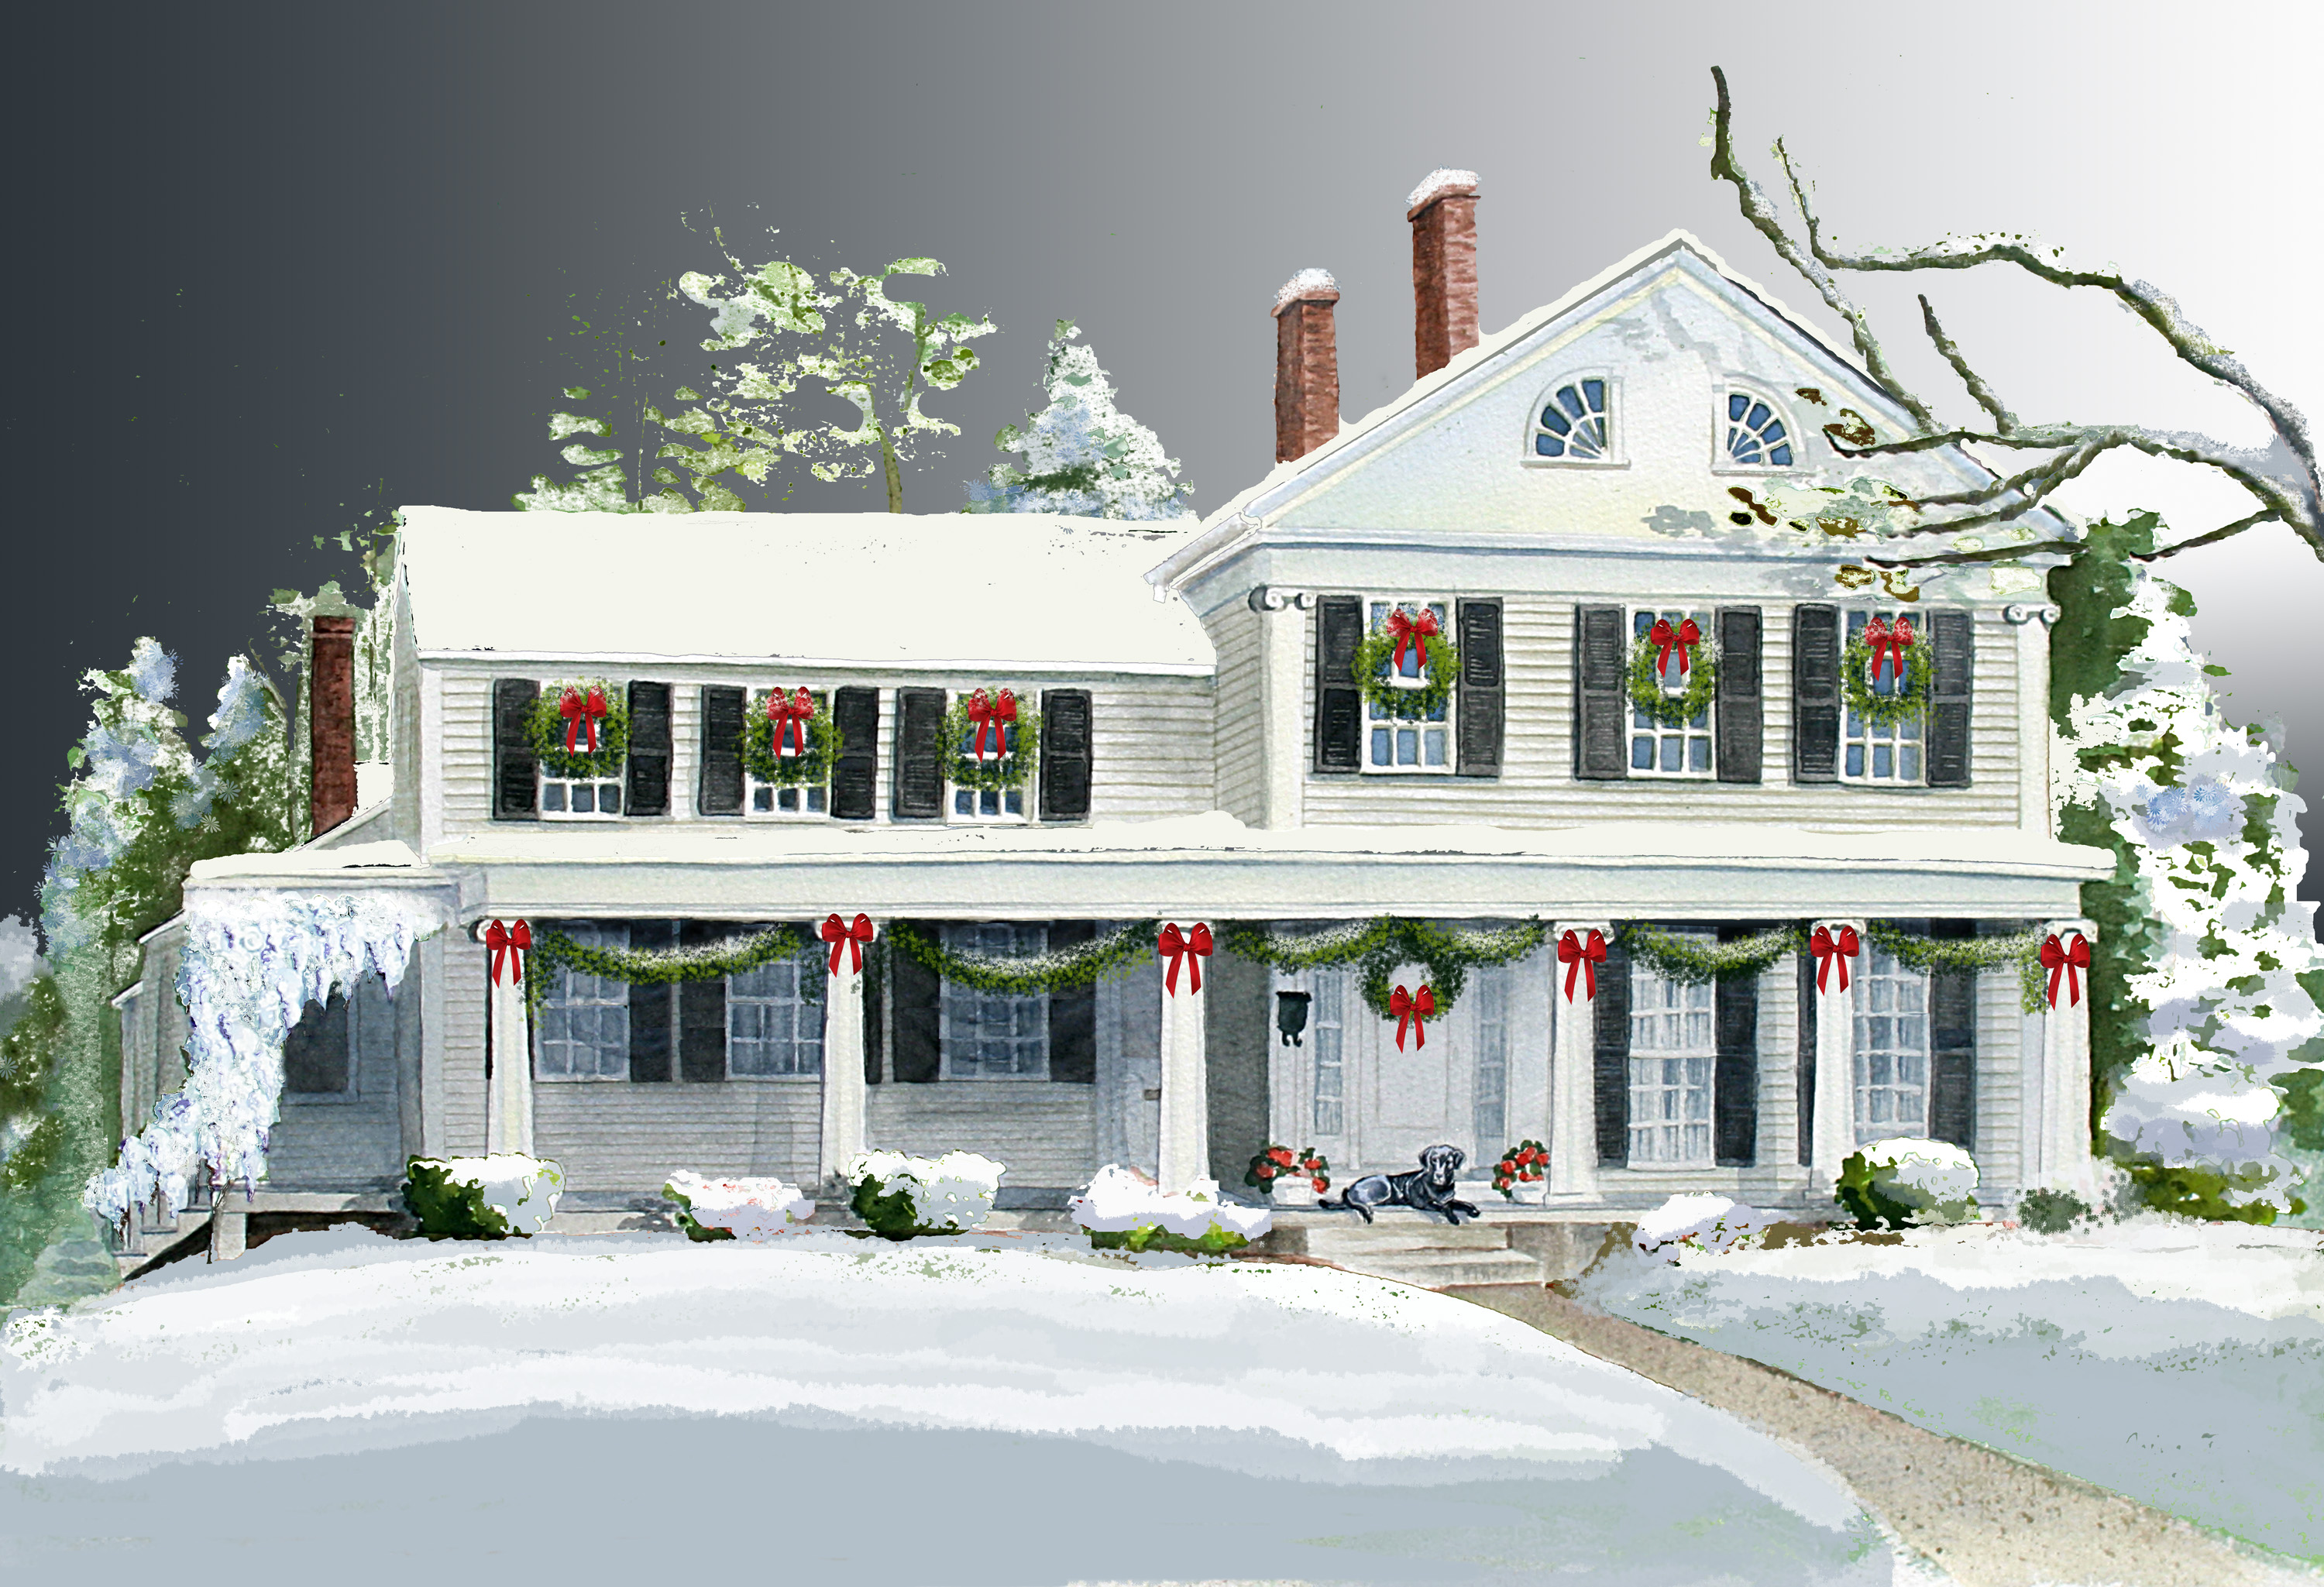 Chistmas in the Village Holiday House Tour